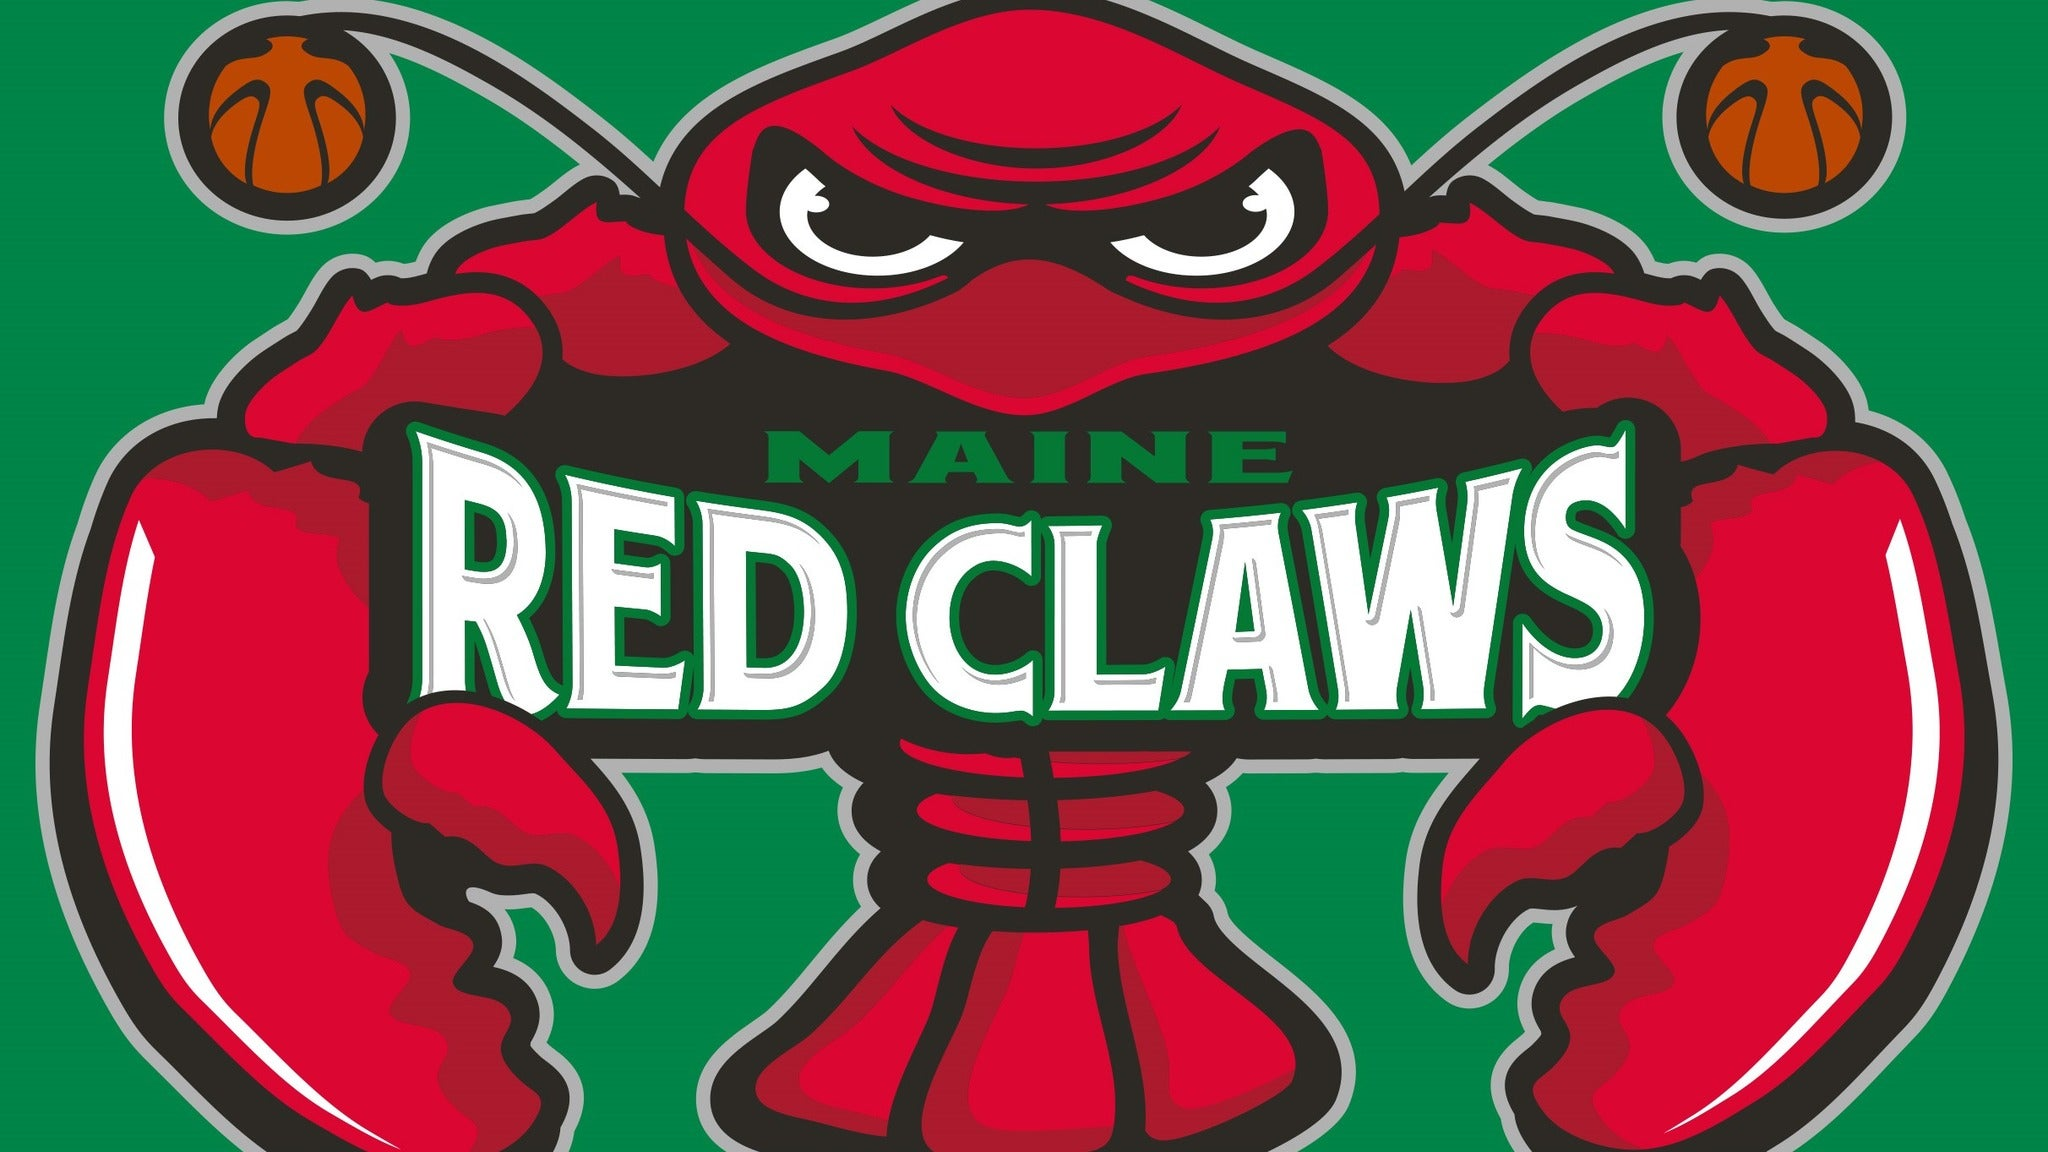 Maine Red Claws vs. Erie Bayhawks at Portland Expo - Portland, ME 04102